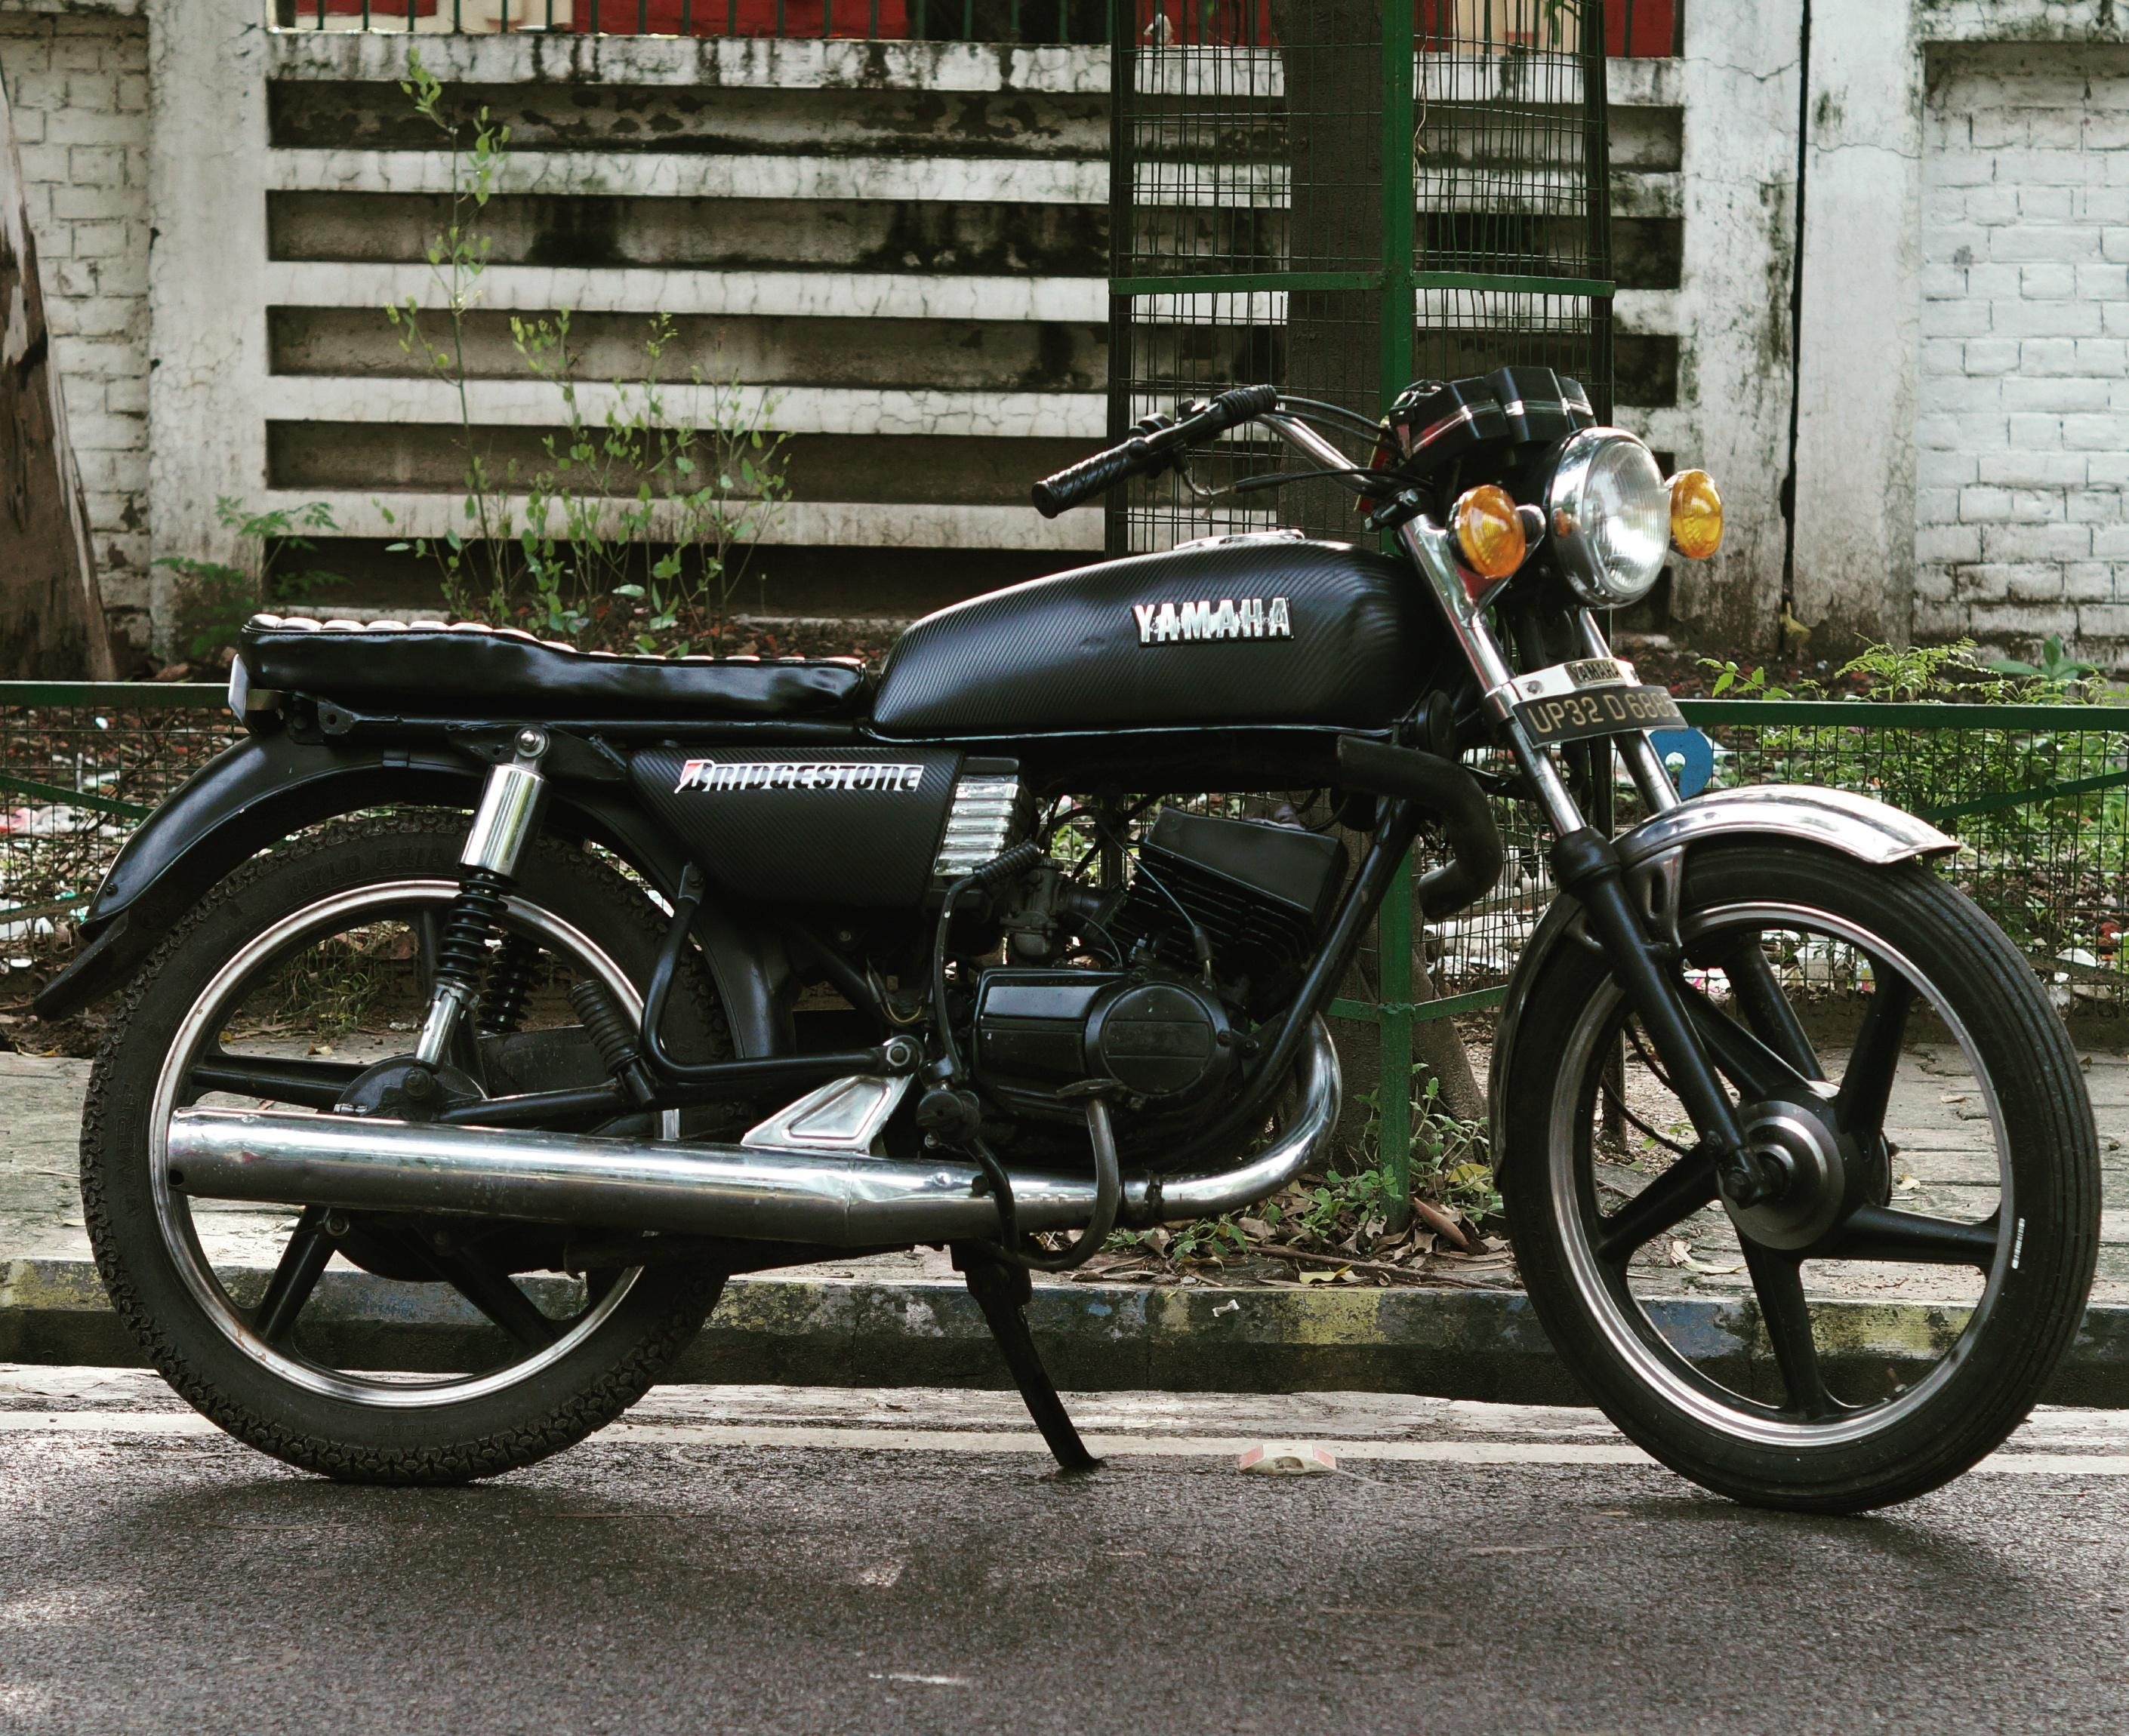 Yamaha Rx 100 Bike For Sale In Lucknow Id 1415851843 Droom